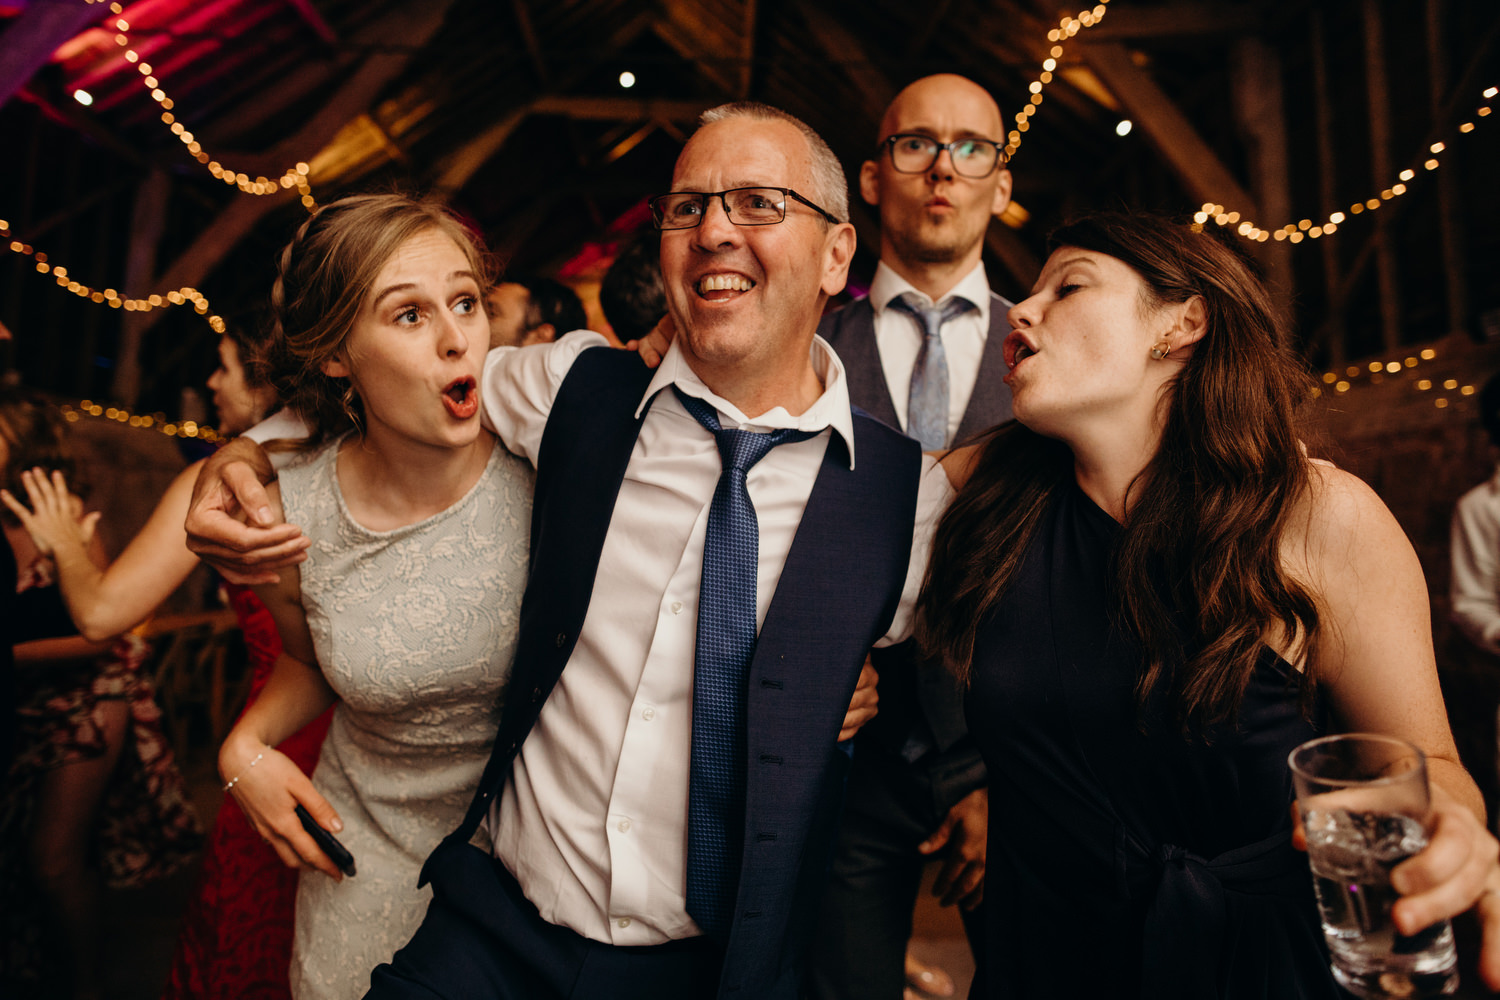 guests sing at wedding